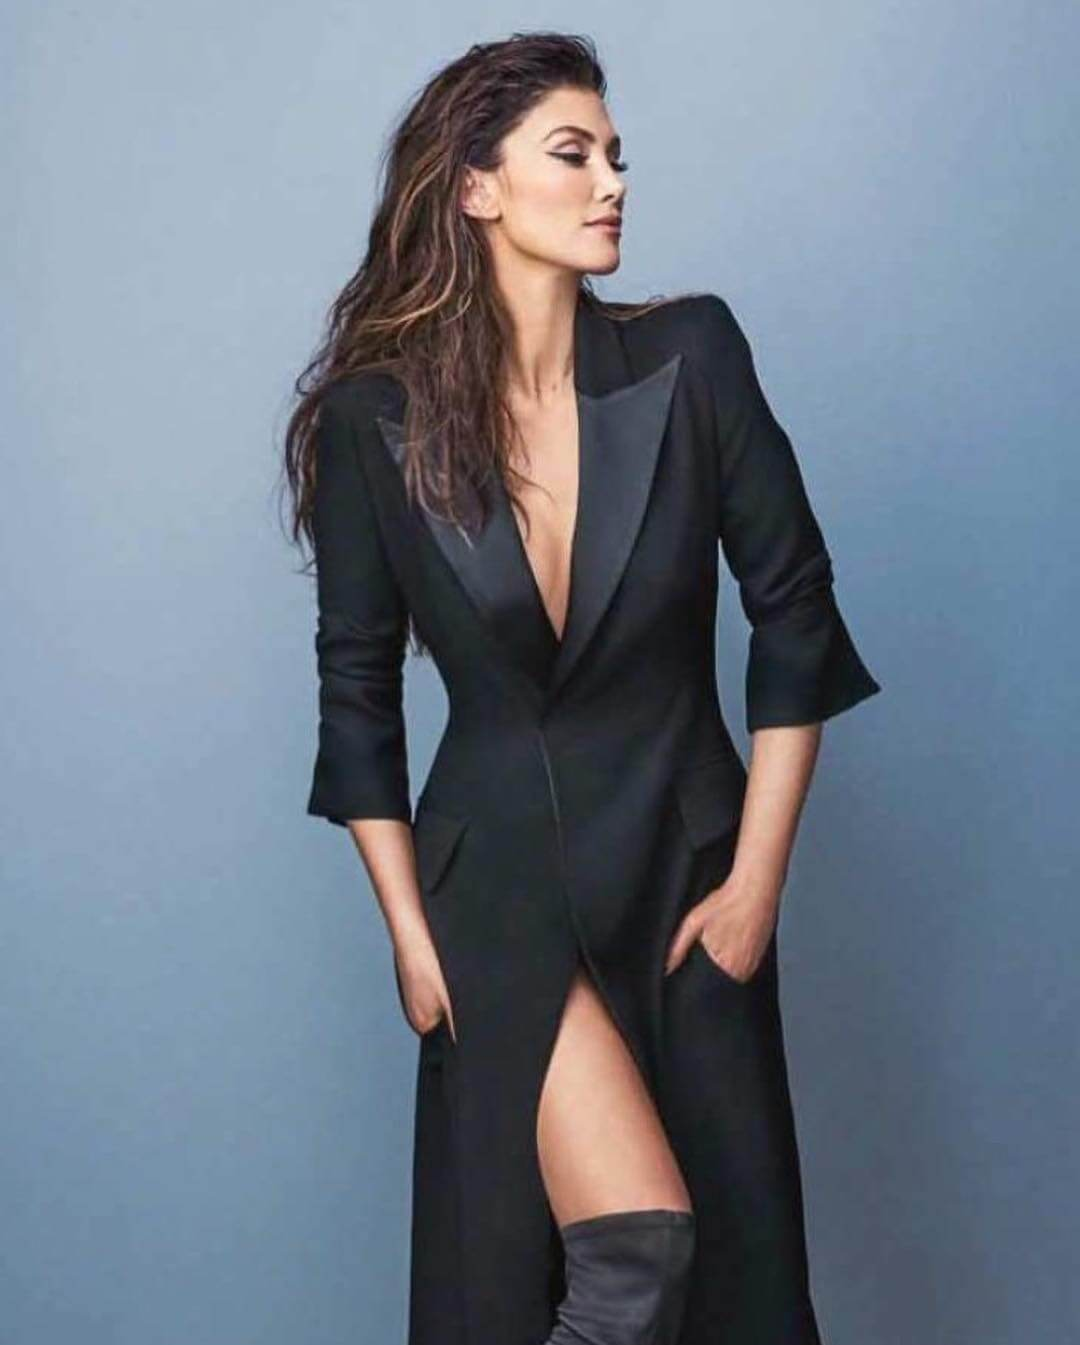 Delta Goodrem for Who Magazine Photoshoot, December 2018 1